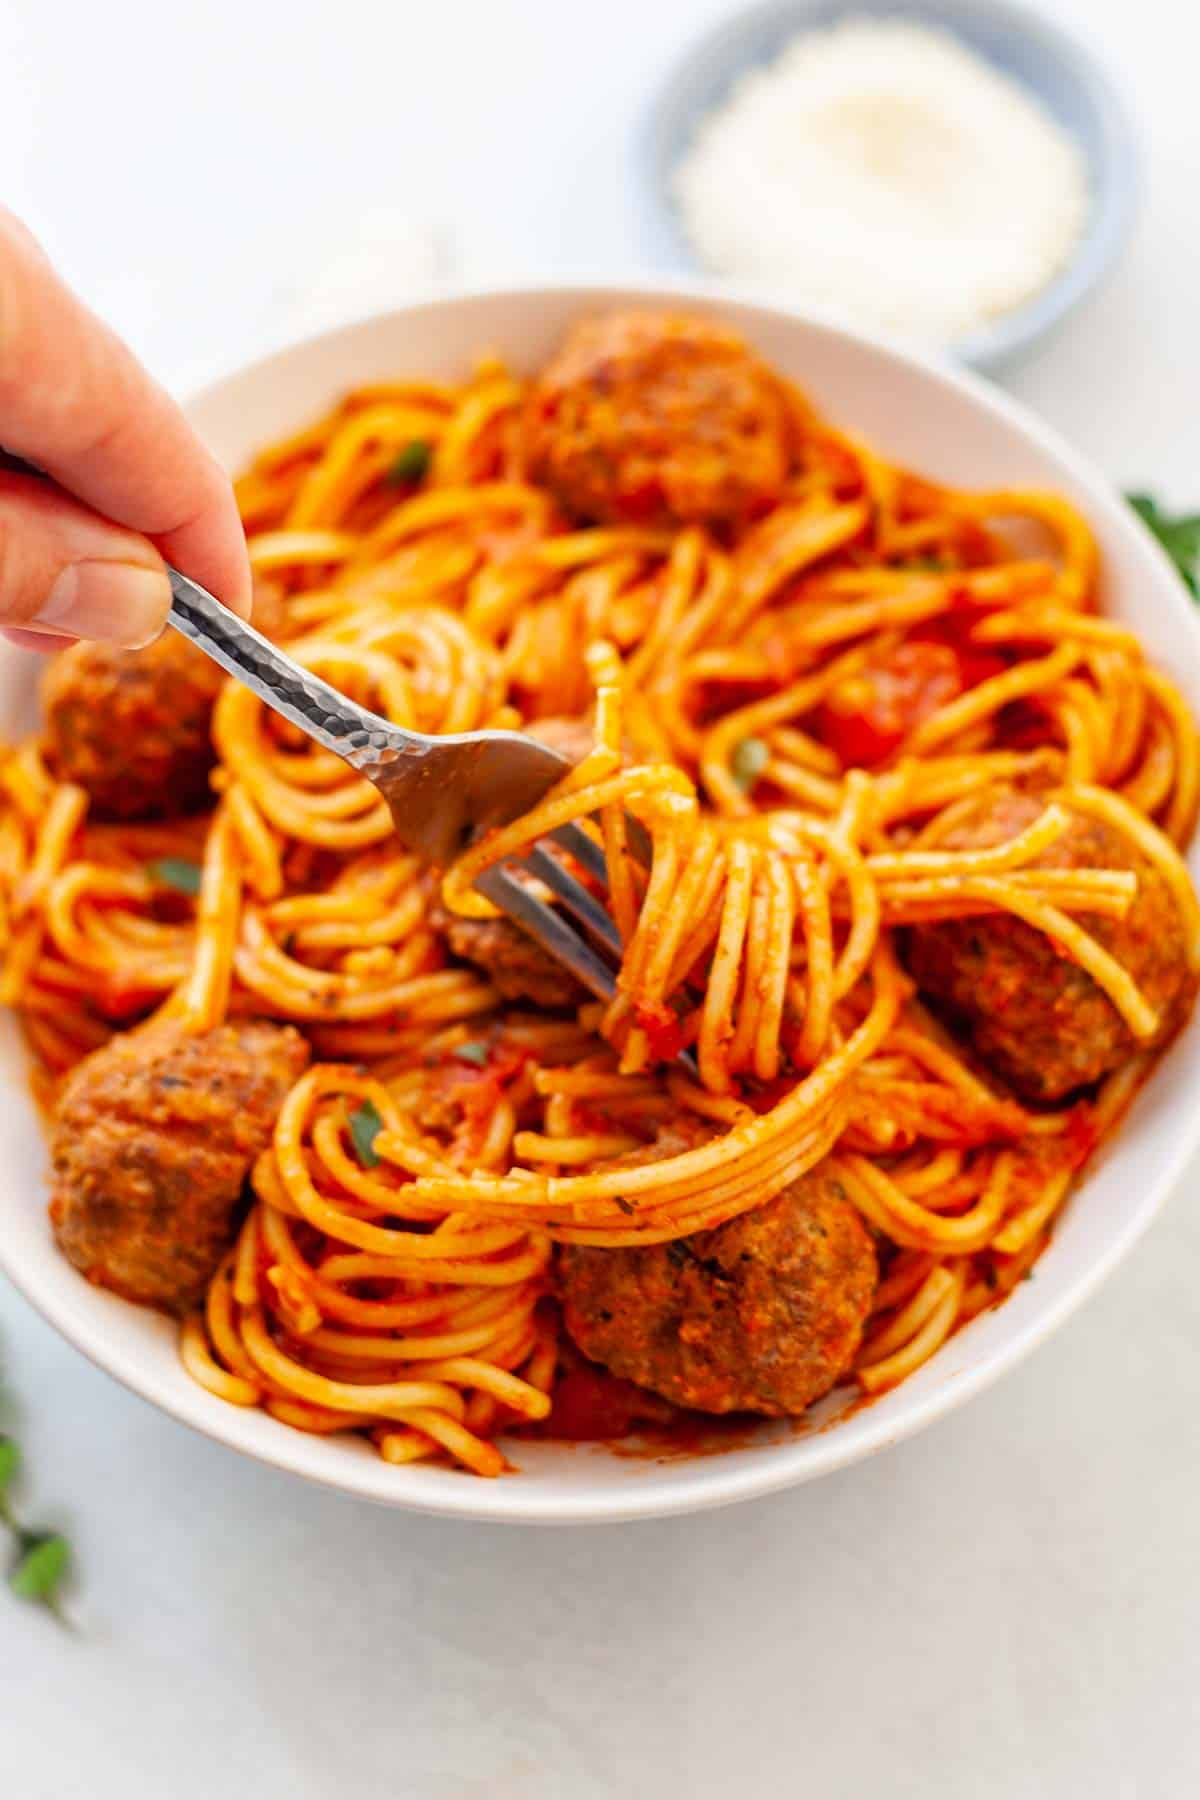 bowl of spaghetti twirled around a fork and meatballs in red sauce